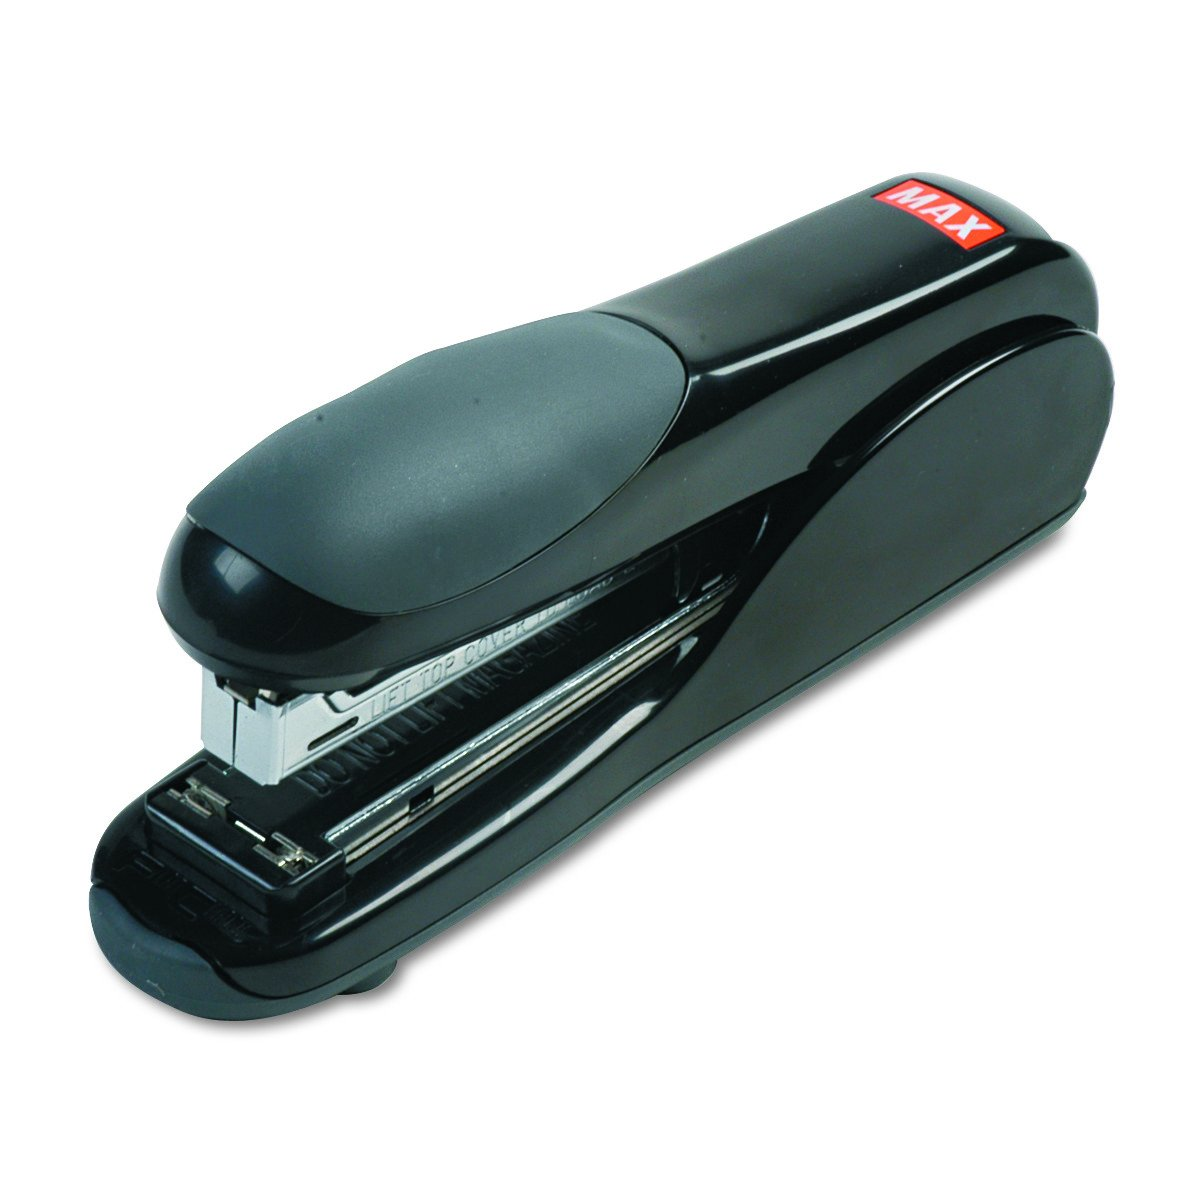 Max Flat-Clinch Black Standard Stapler with 30 Sheet Capacity (HD-50DFBK)